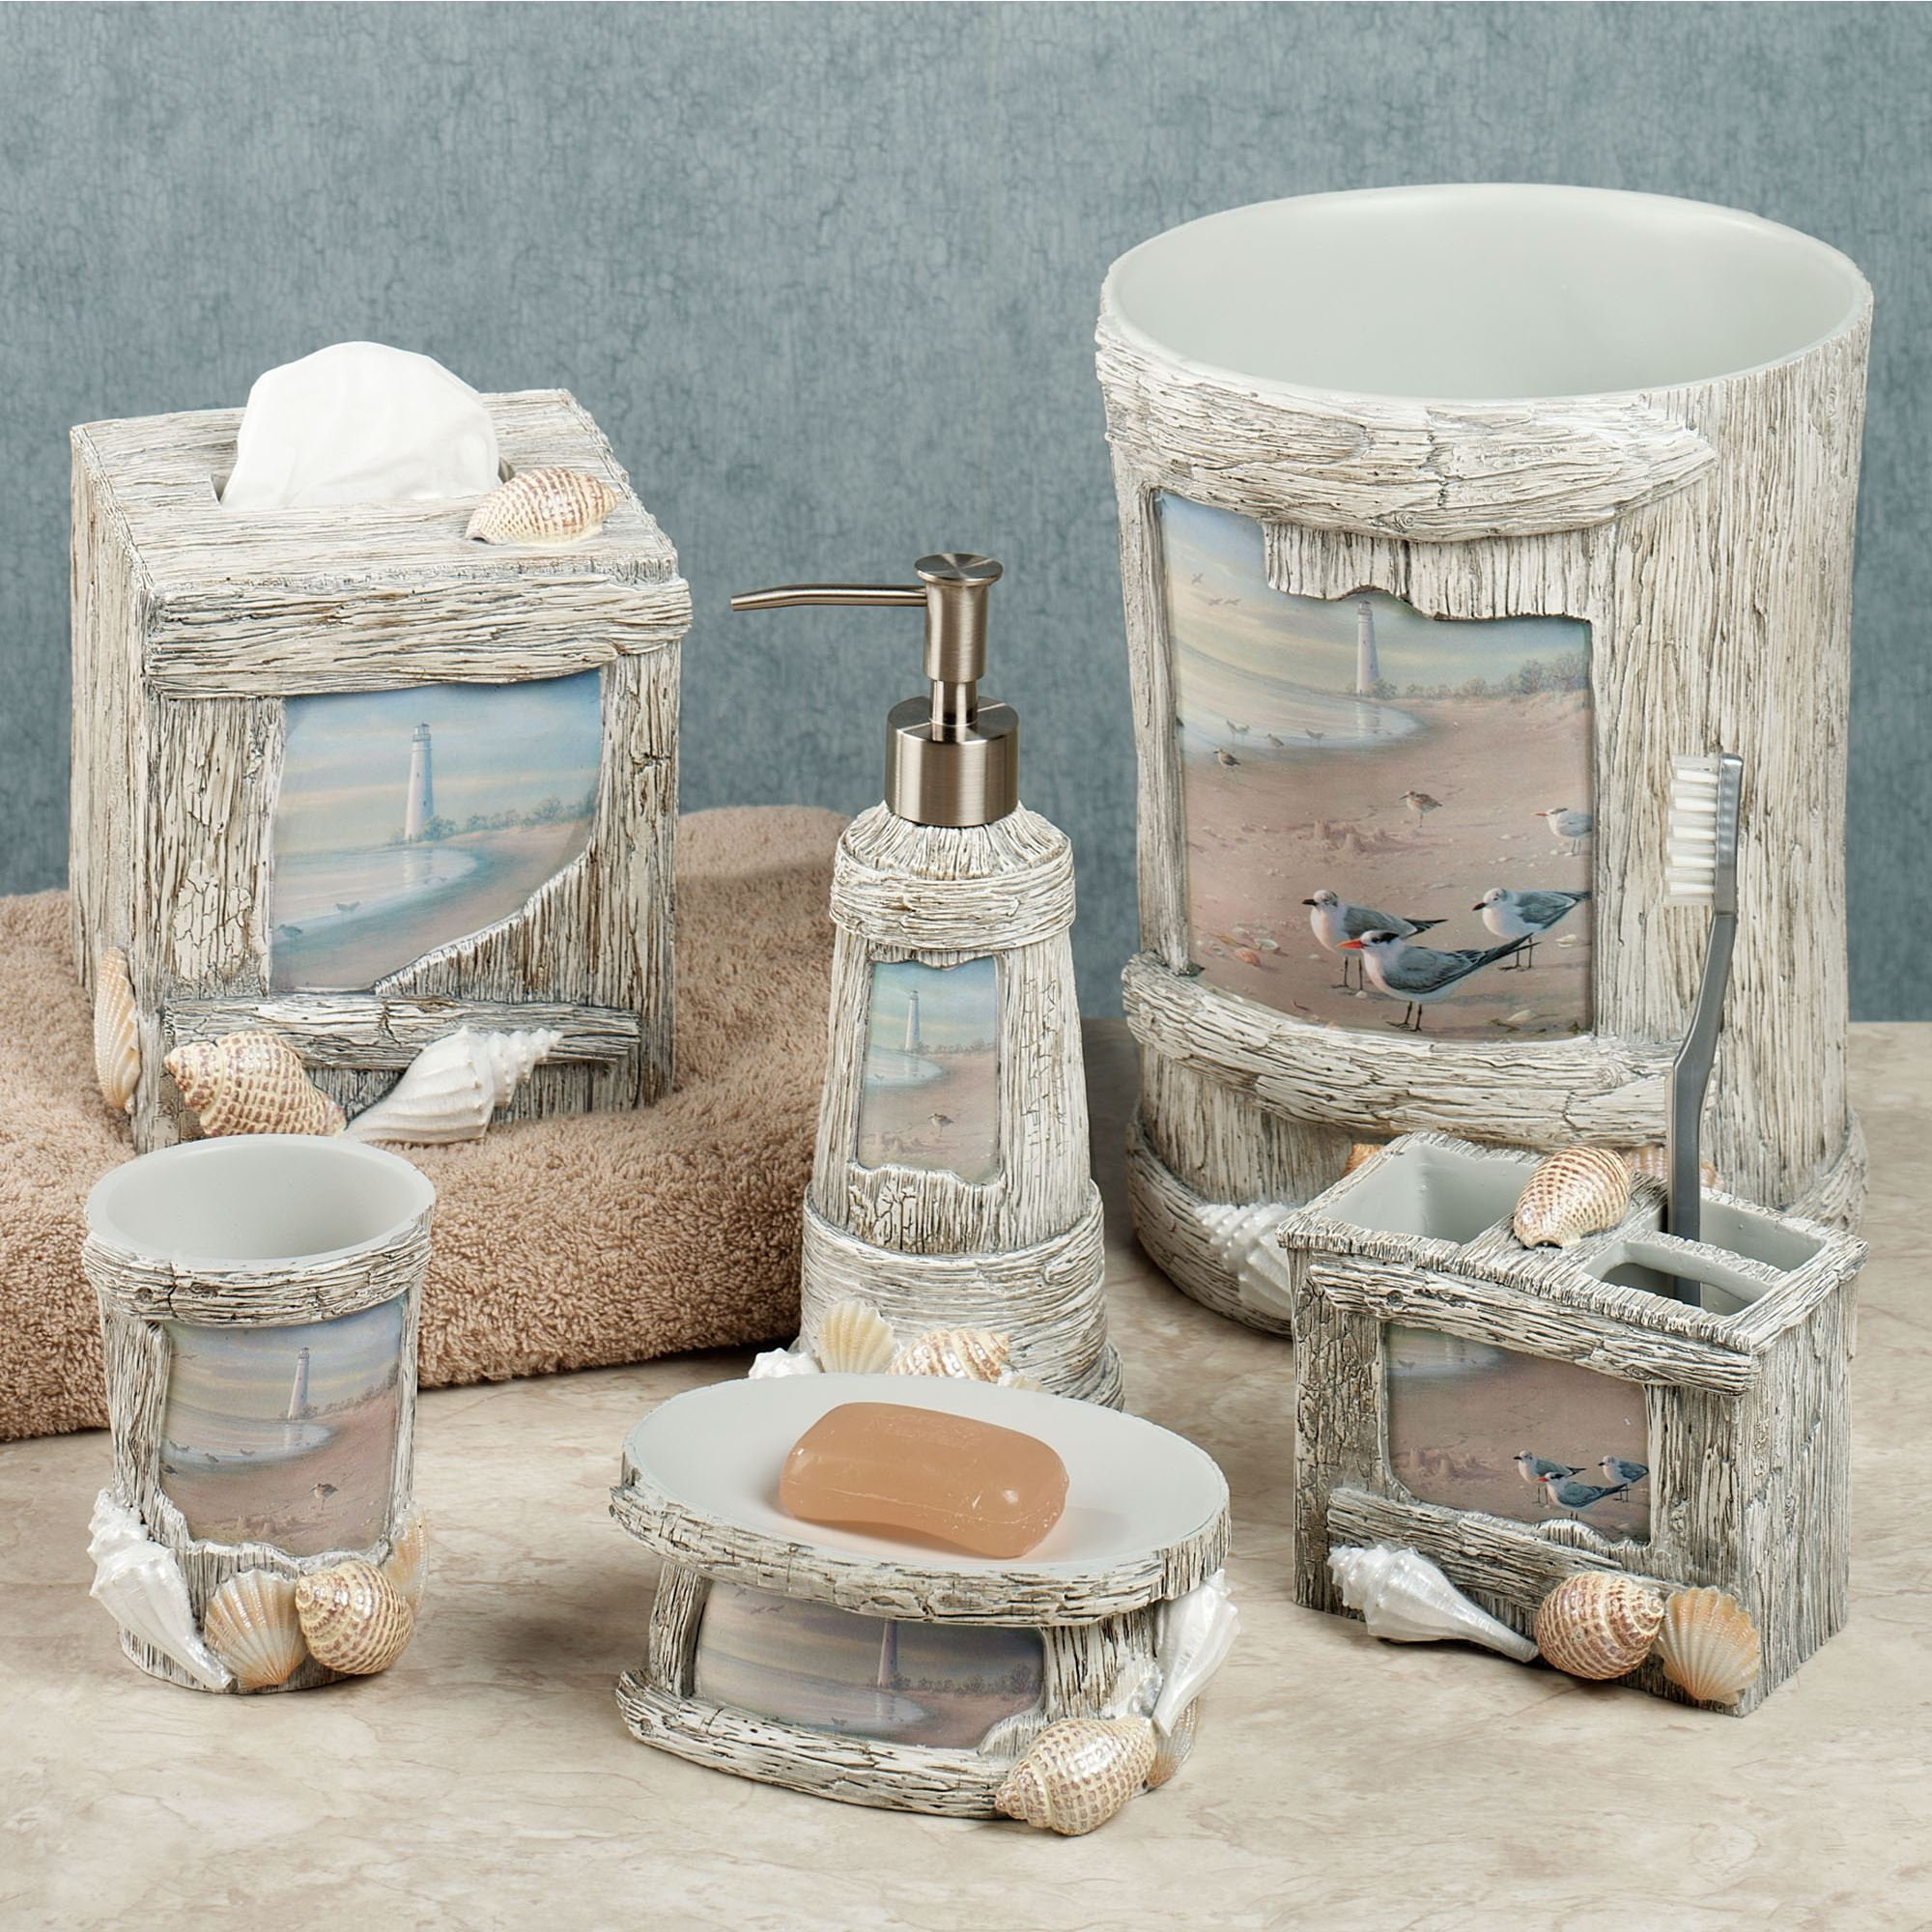 At the beach bath accessories